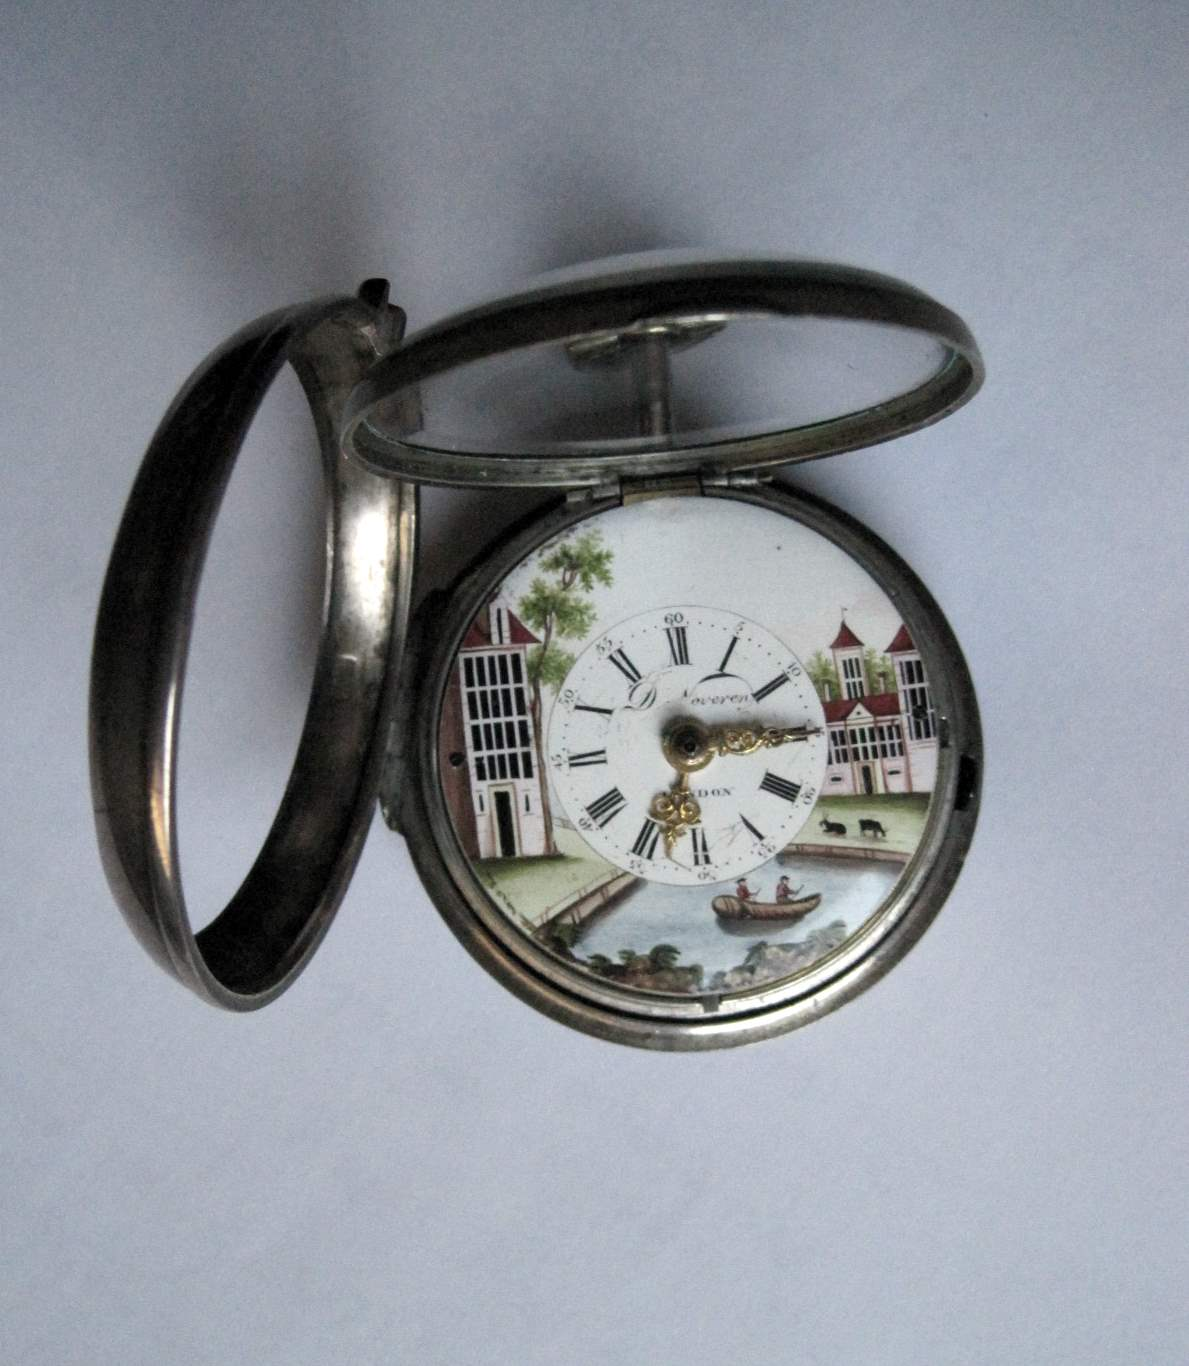 Lot 13 - Large gusset watch 18th sterling silver (1780), brand D.D. Neveren, protective case, [...]